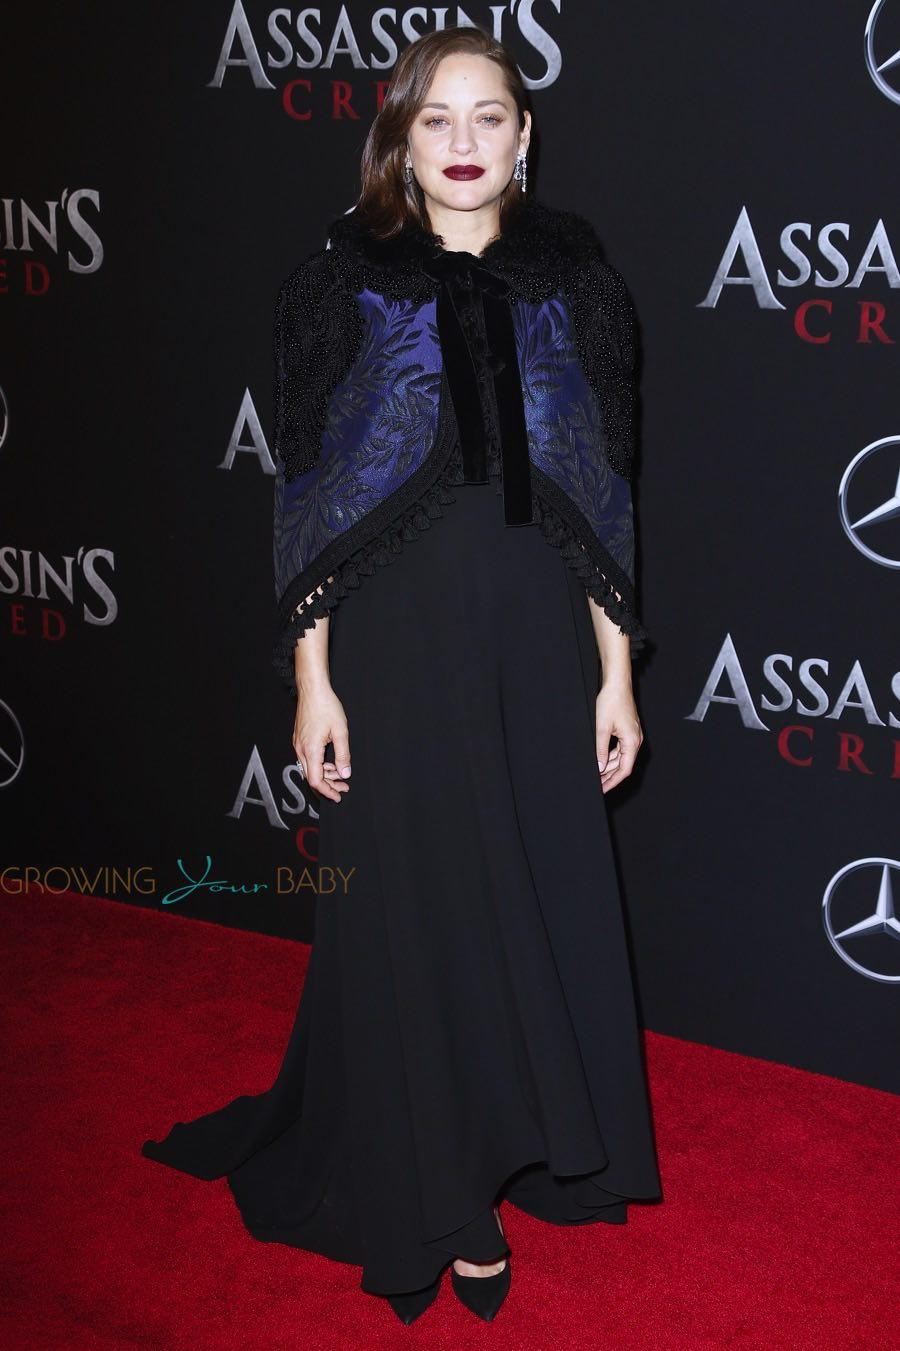 Pregnant Marion Cotillard at the premiere of 'Assassins Creed' in New York City, New York on December 13, 2016